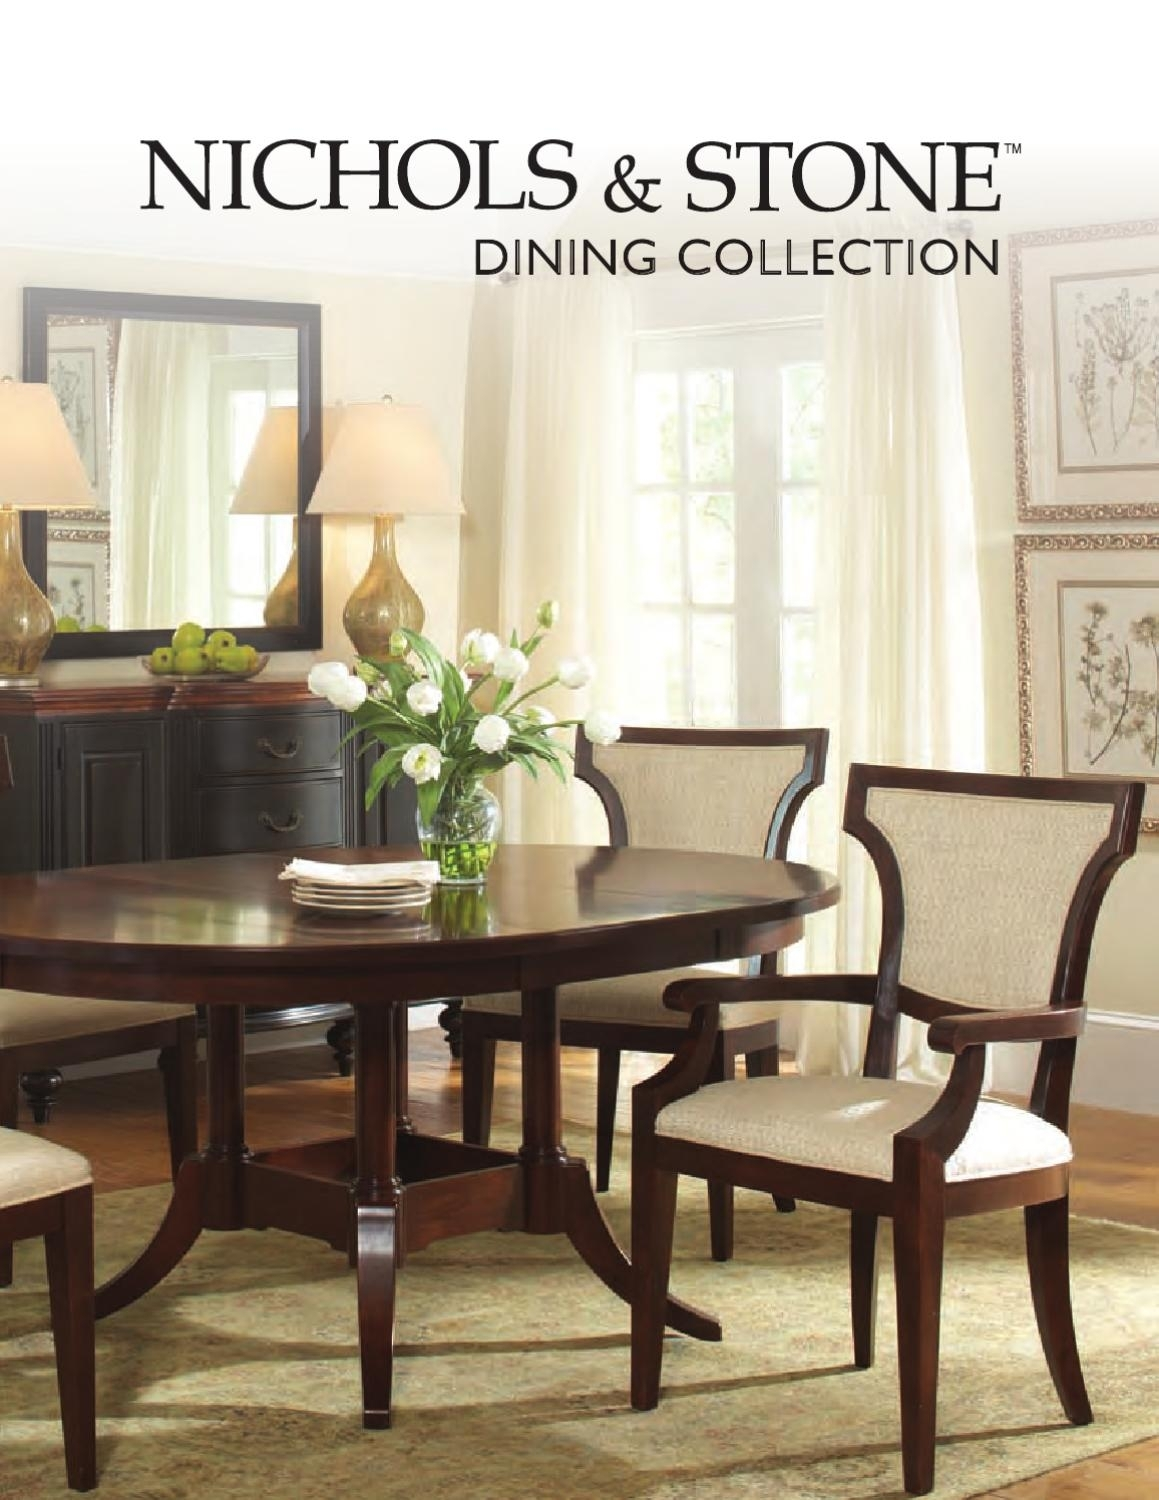 Dining Collectionnichols & Stonestickley – Issuu Regarding Latest Walden 9 Piece Extension Dining Sets (Image 3 of 20)